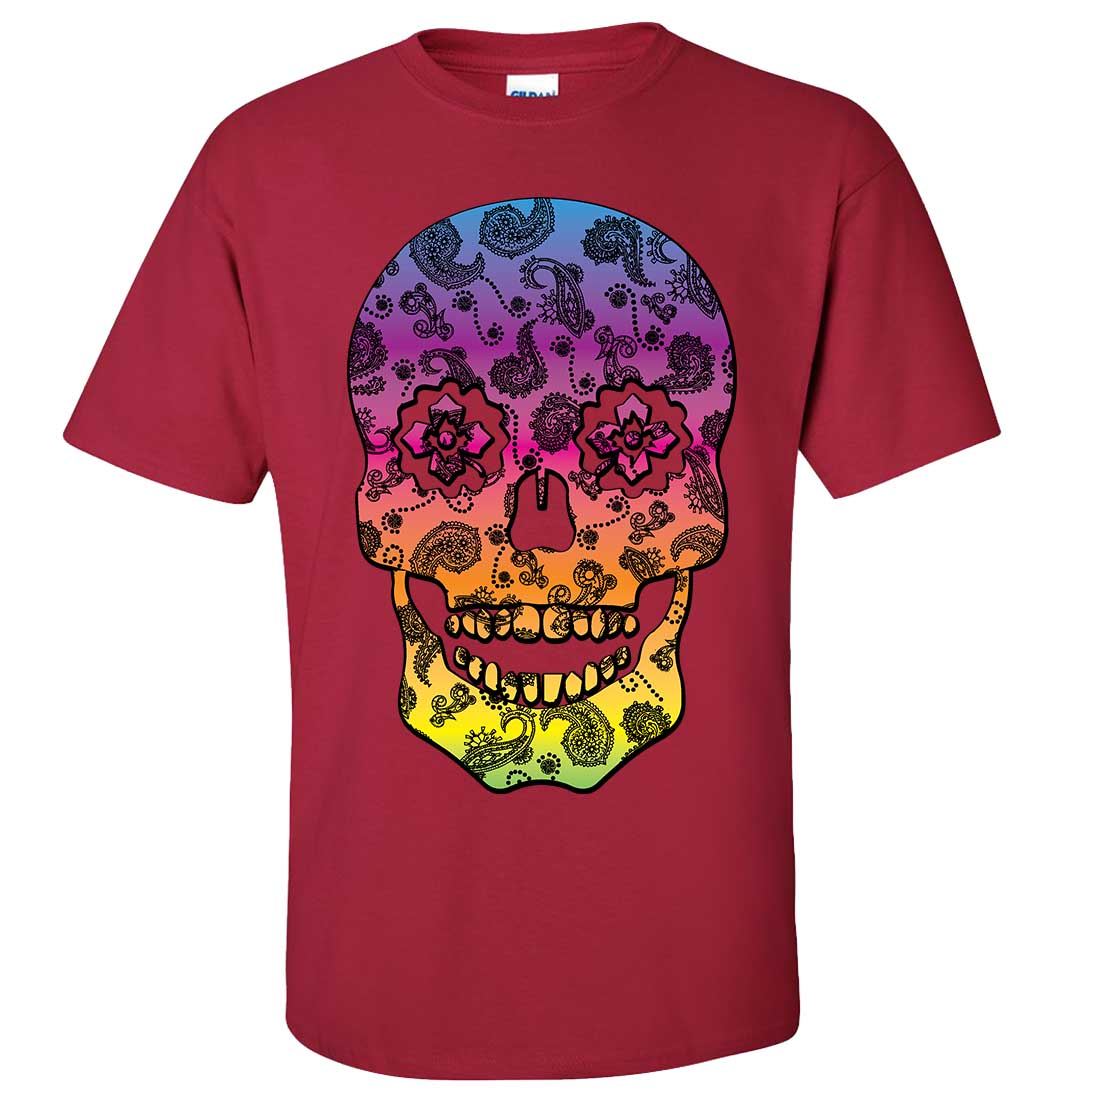 Neon paisley print sugar skull asst colors t shirt tee ebay for Cardinal color t shirts